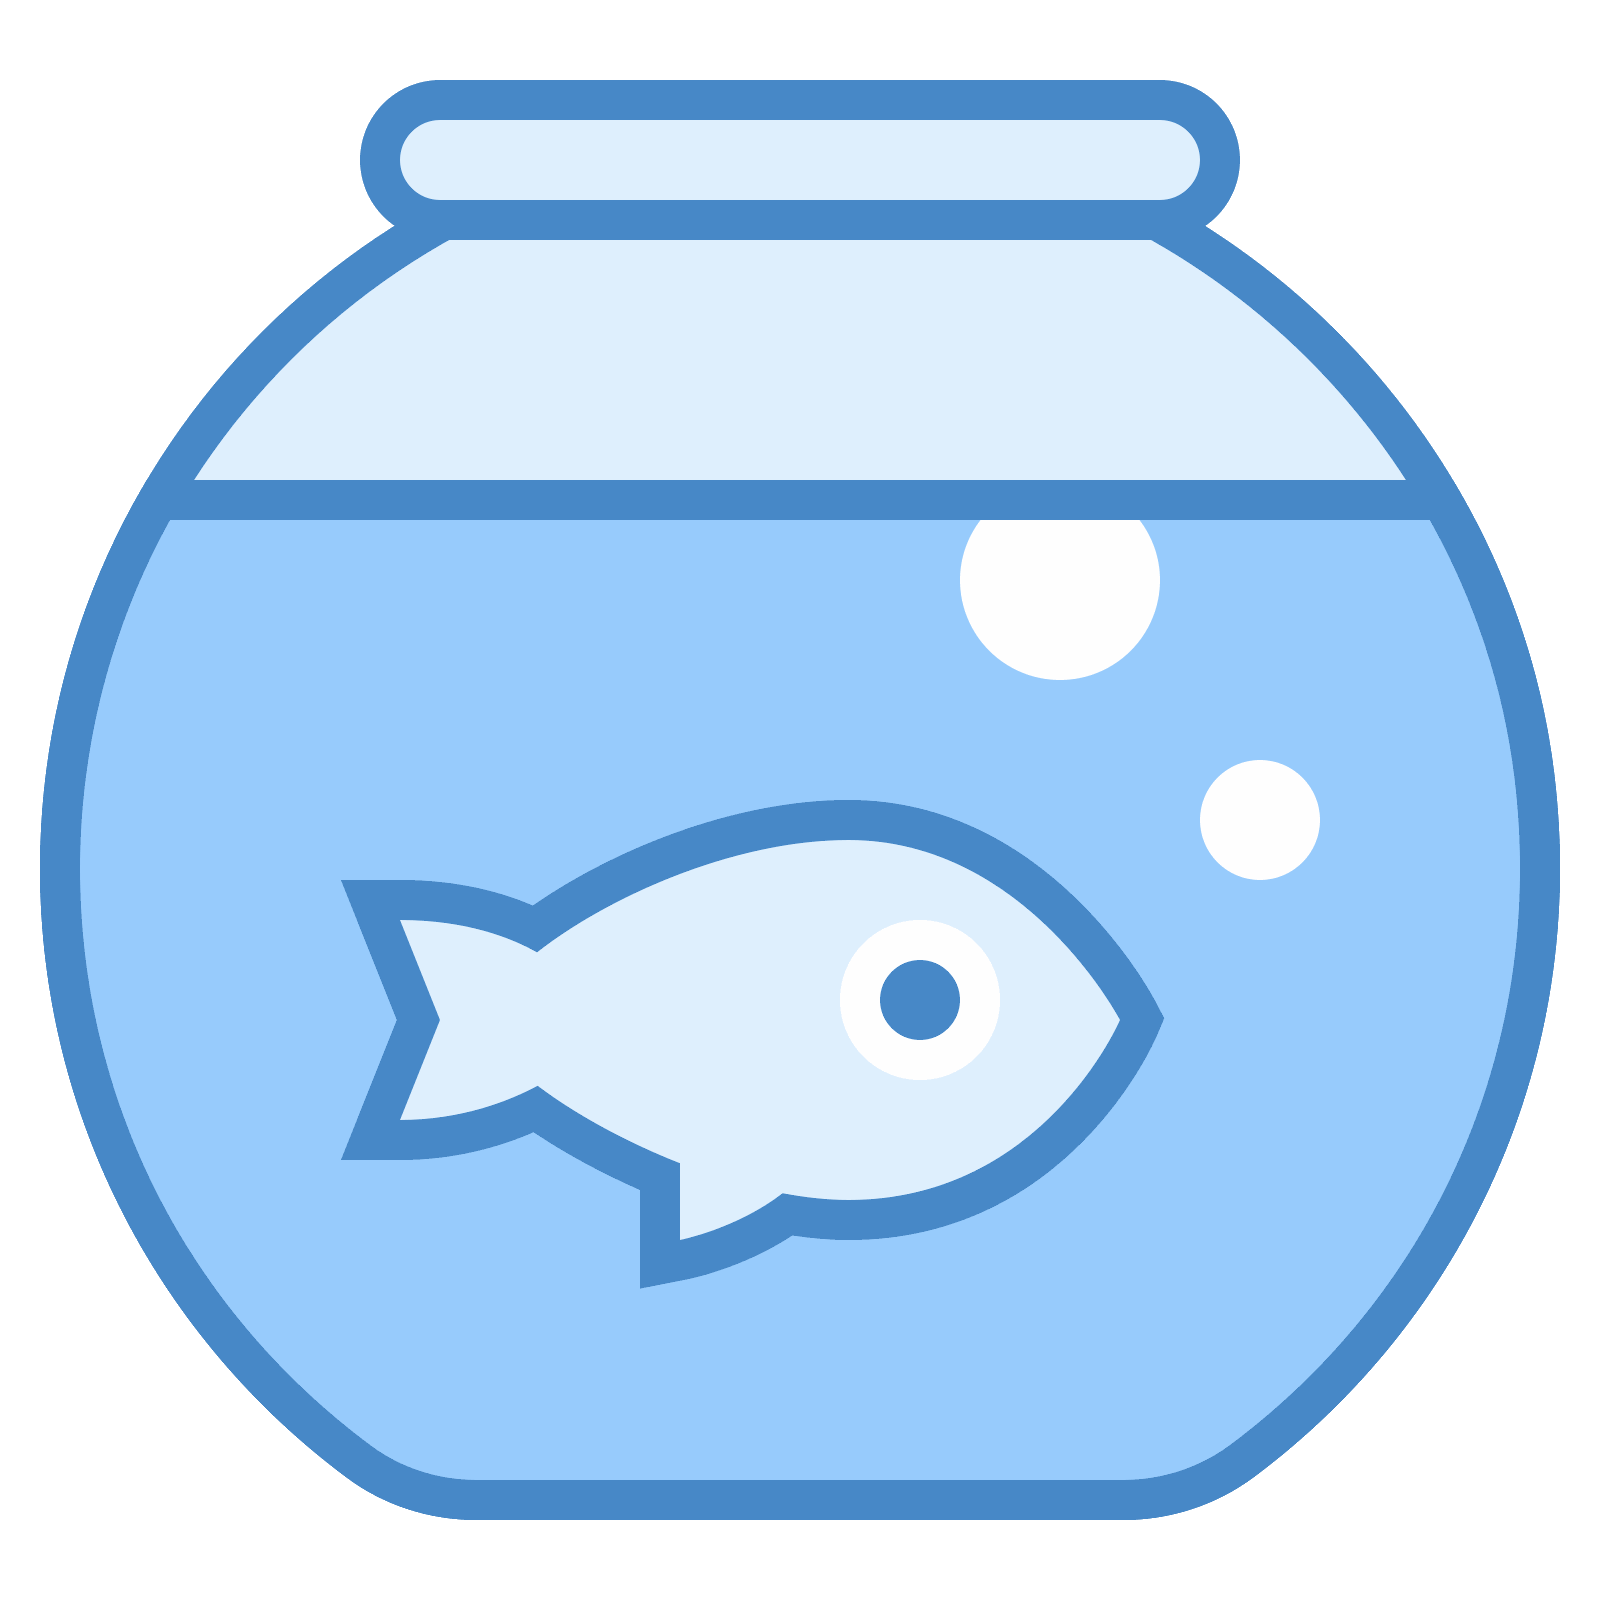 Fish tank transparent clipart vector black and white download Aquarium Icono - descarga gratuita, PNG y vector vector black and white download